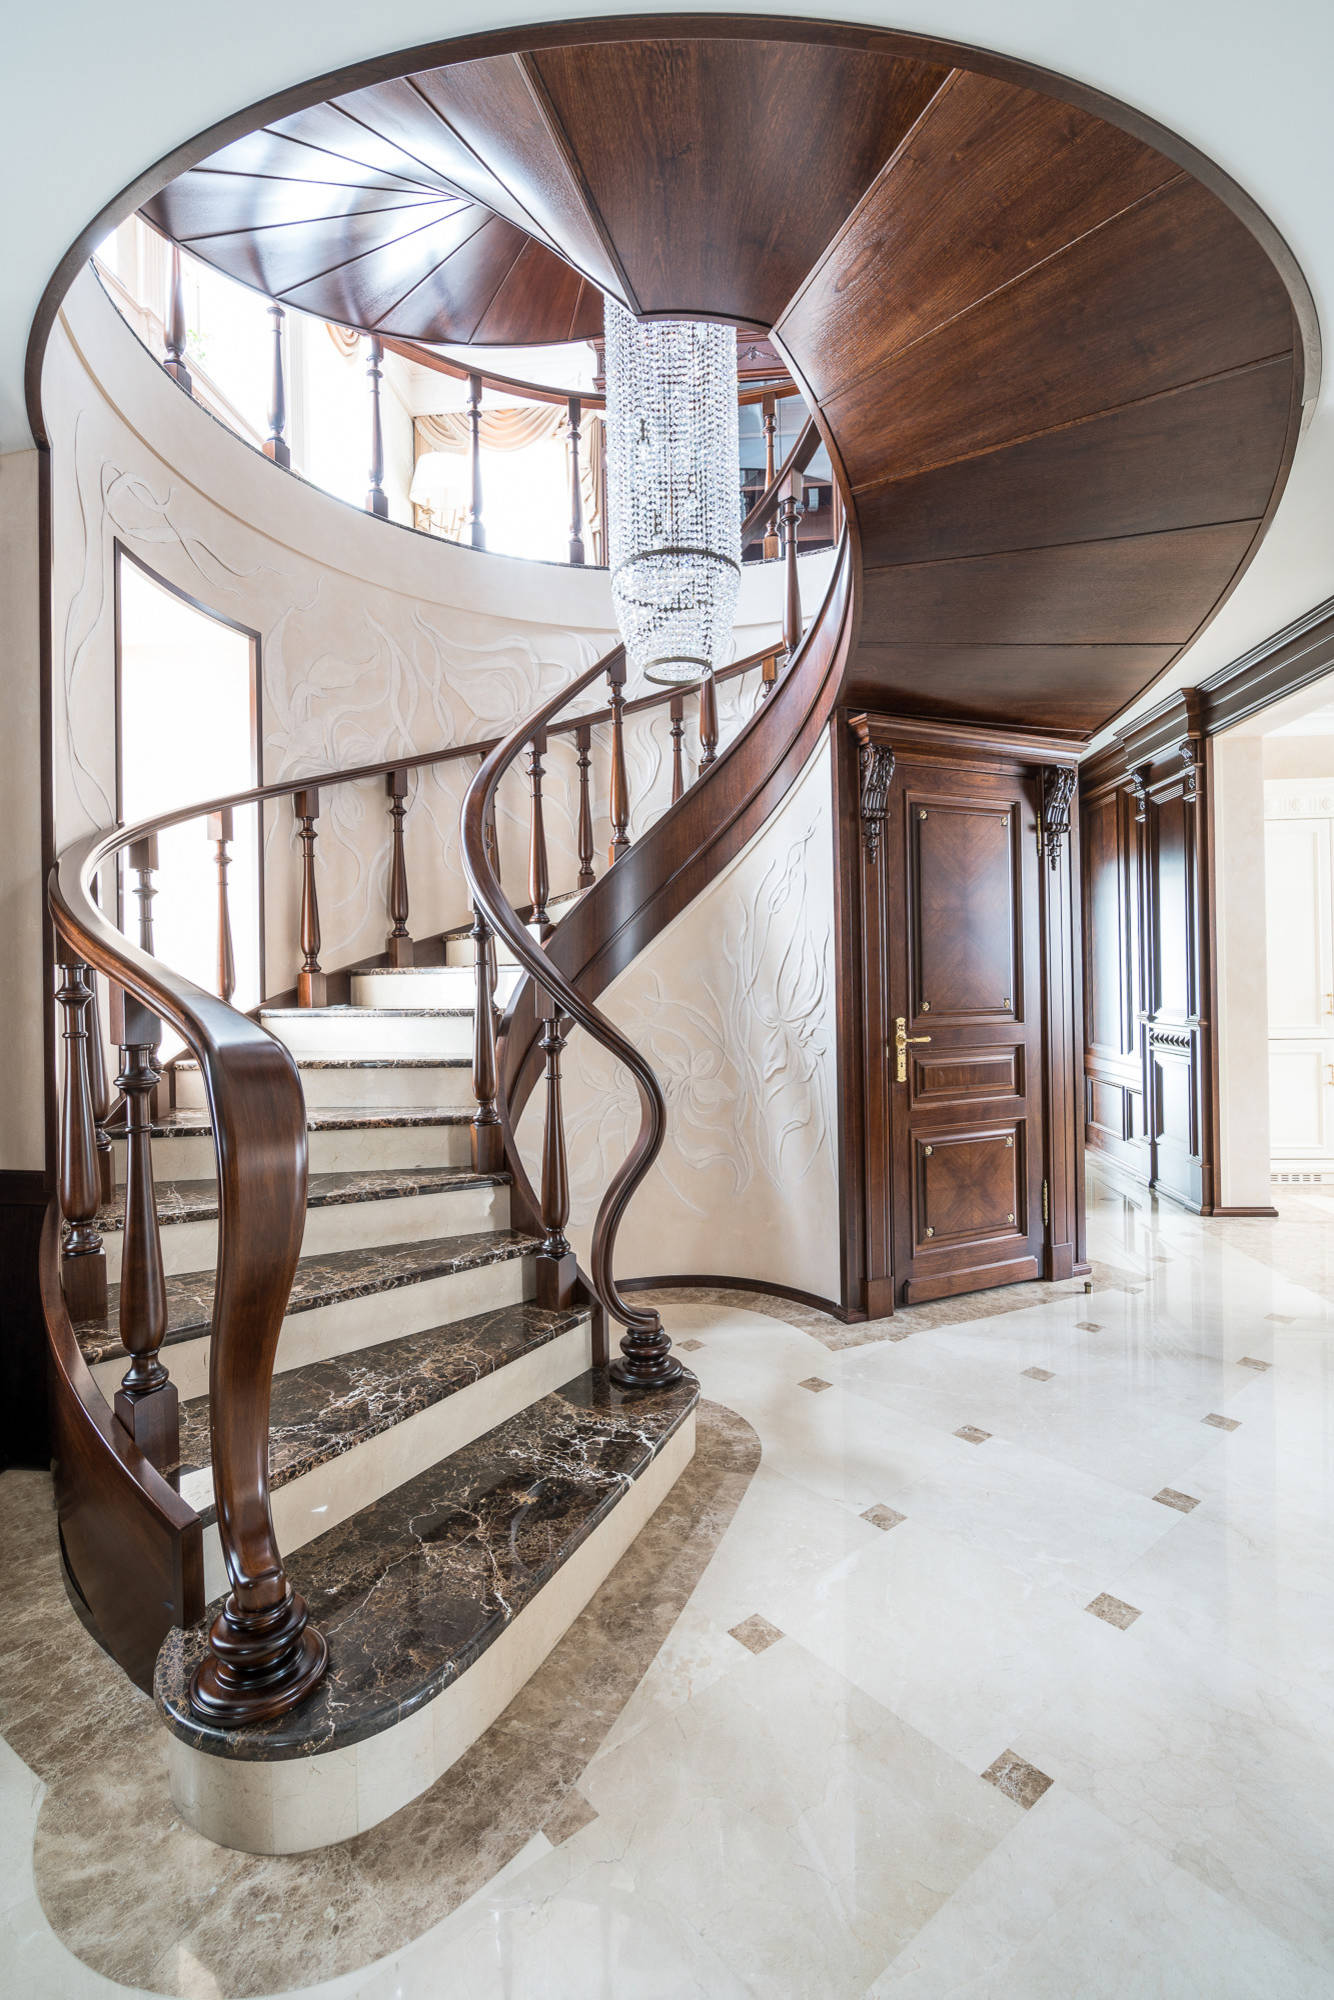 75 Beautiful Traditional Marble Staircase Pictures Ideas December 2020 Houzz